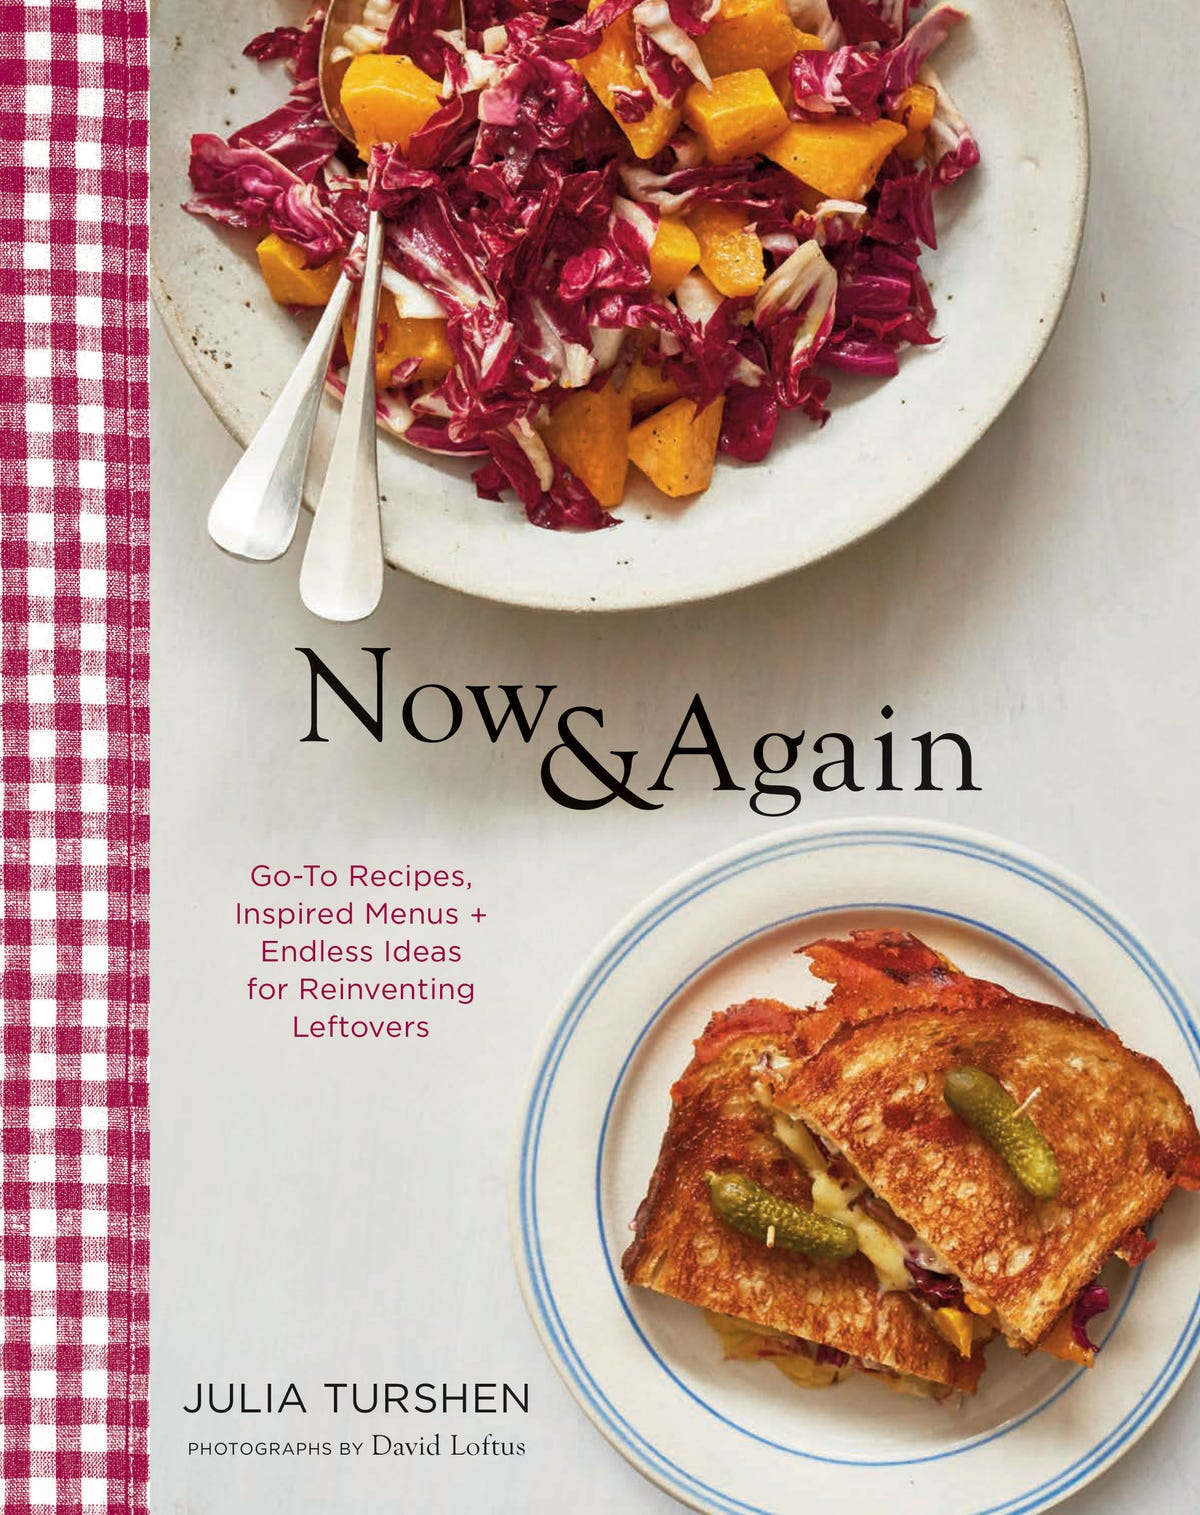 Great cookbooks of 2018, for gifts or for home